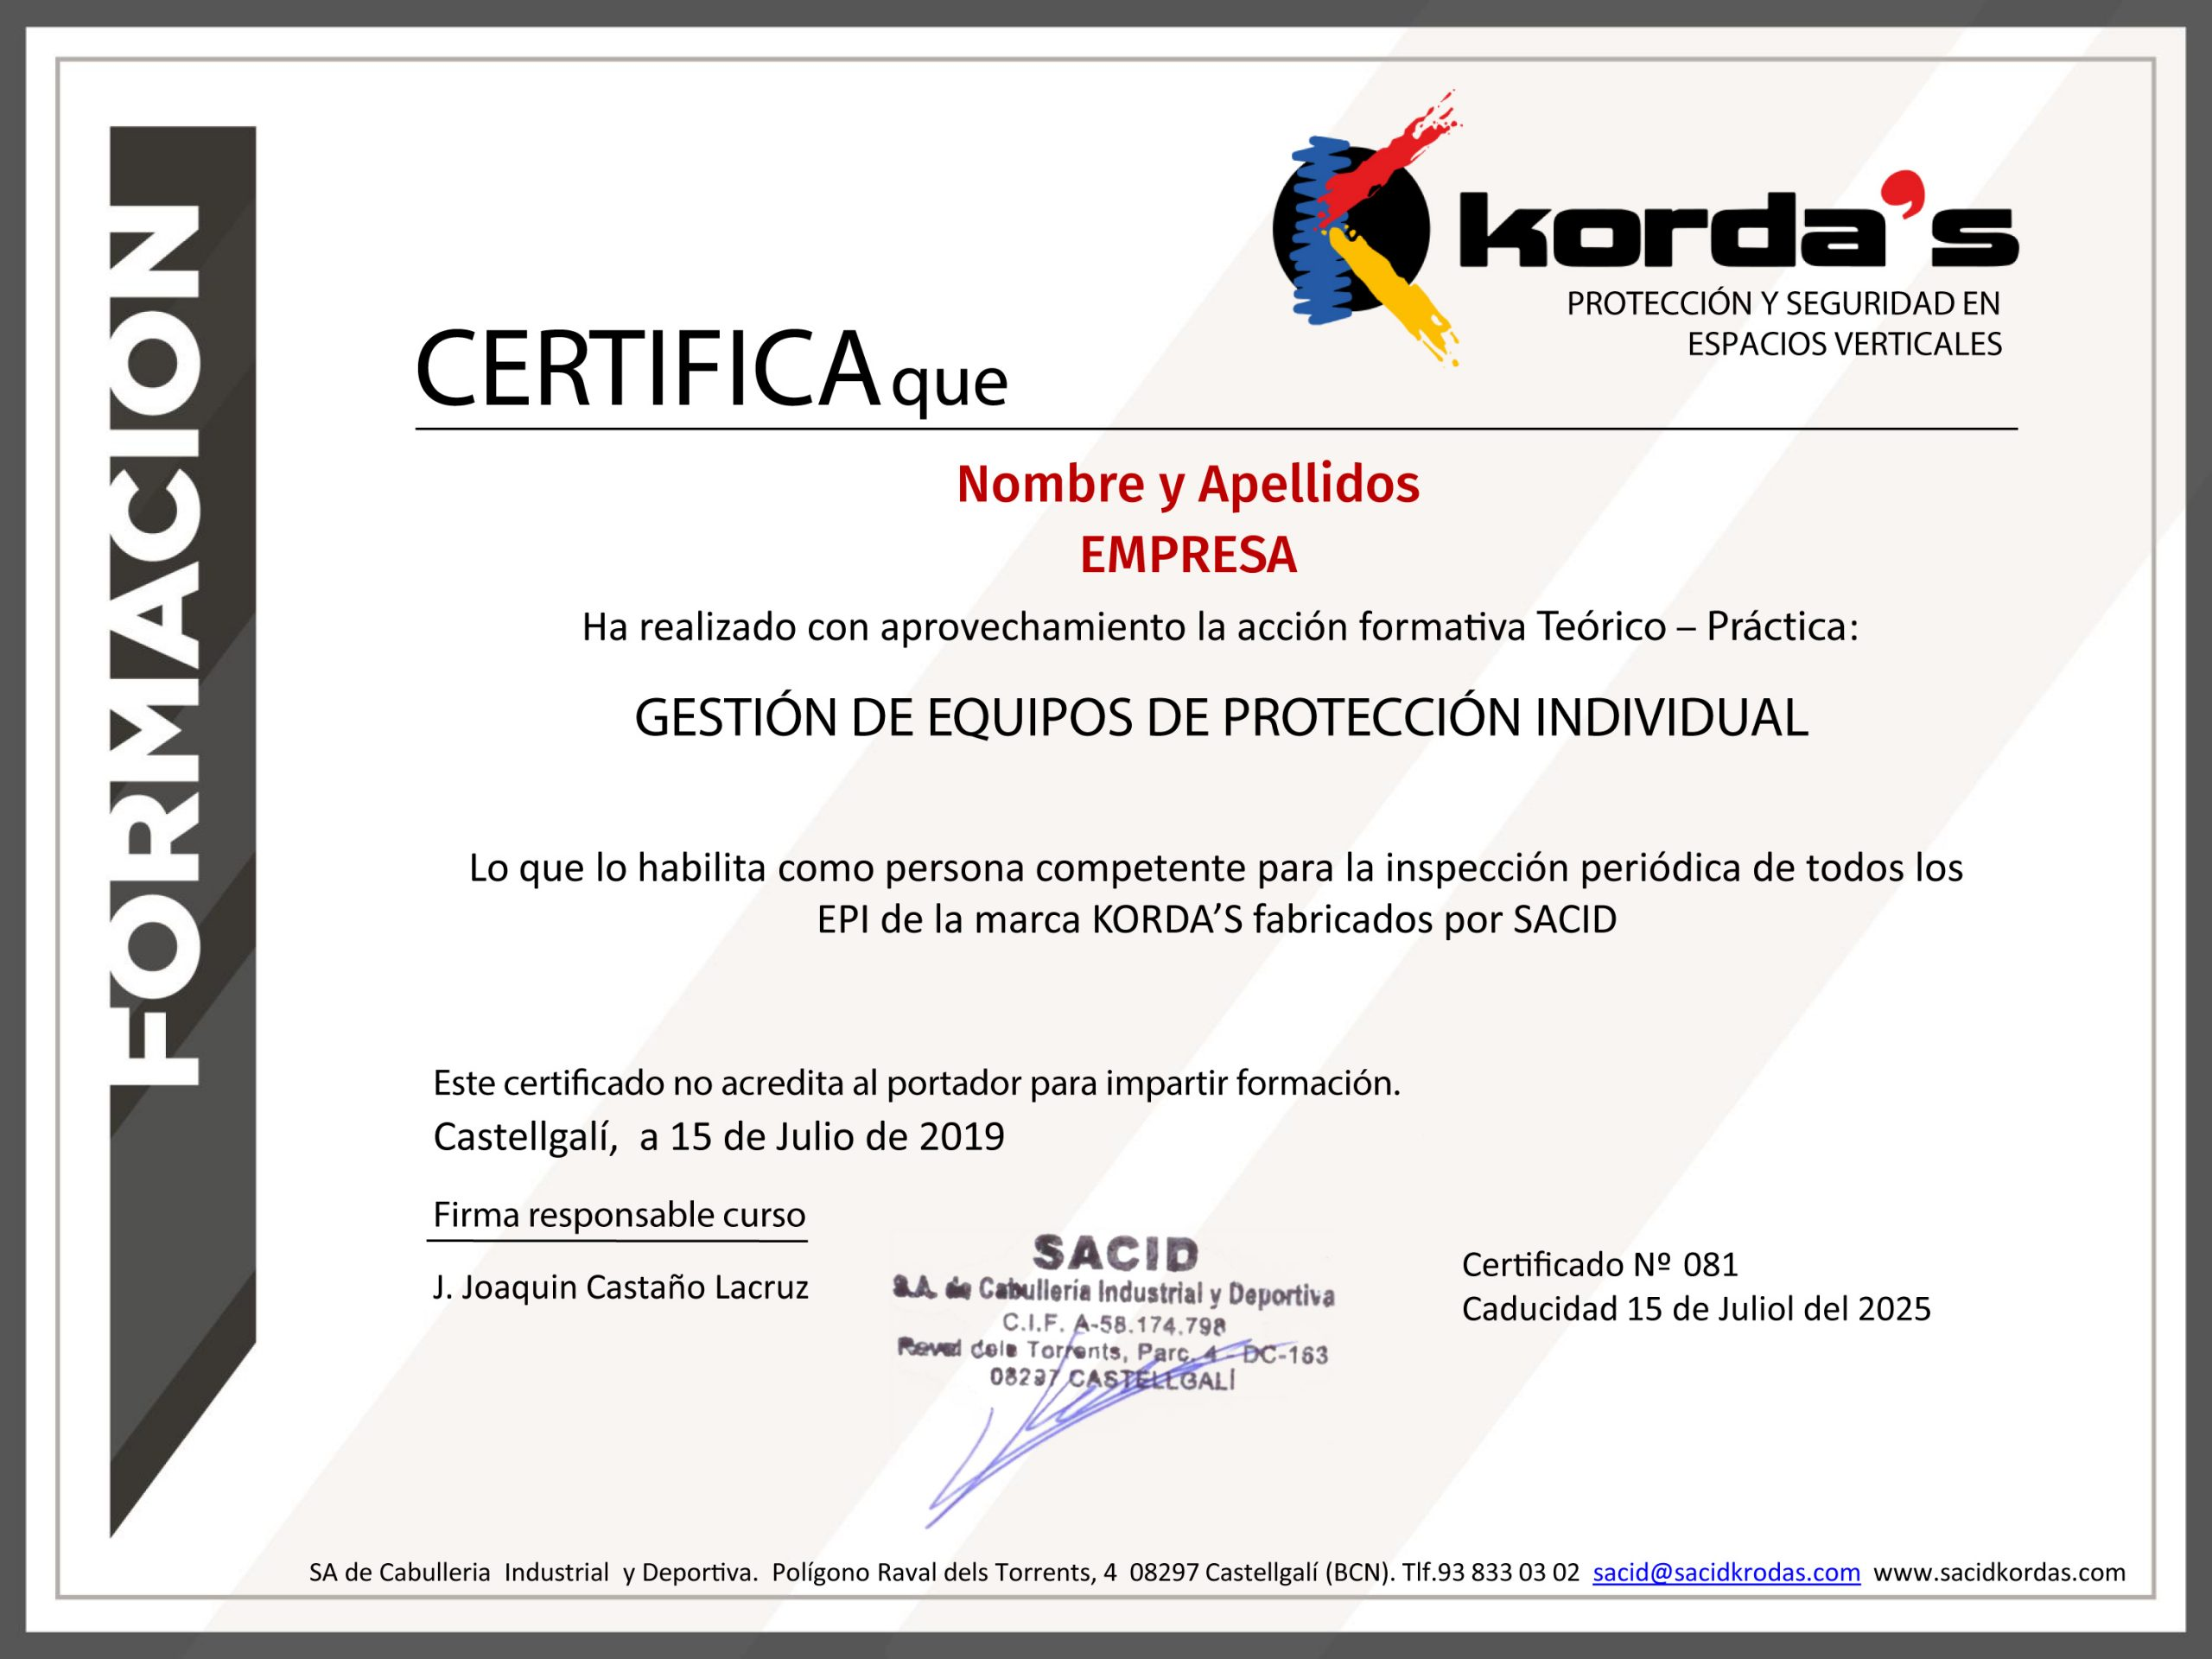 certification kordas